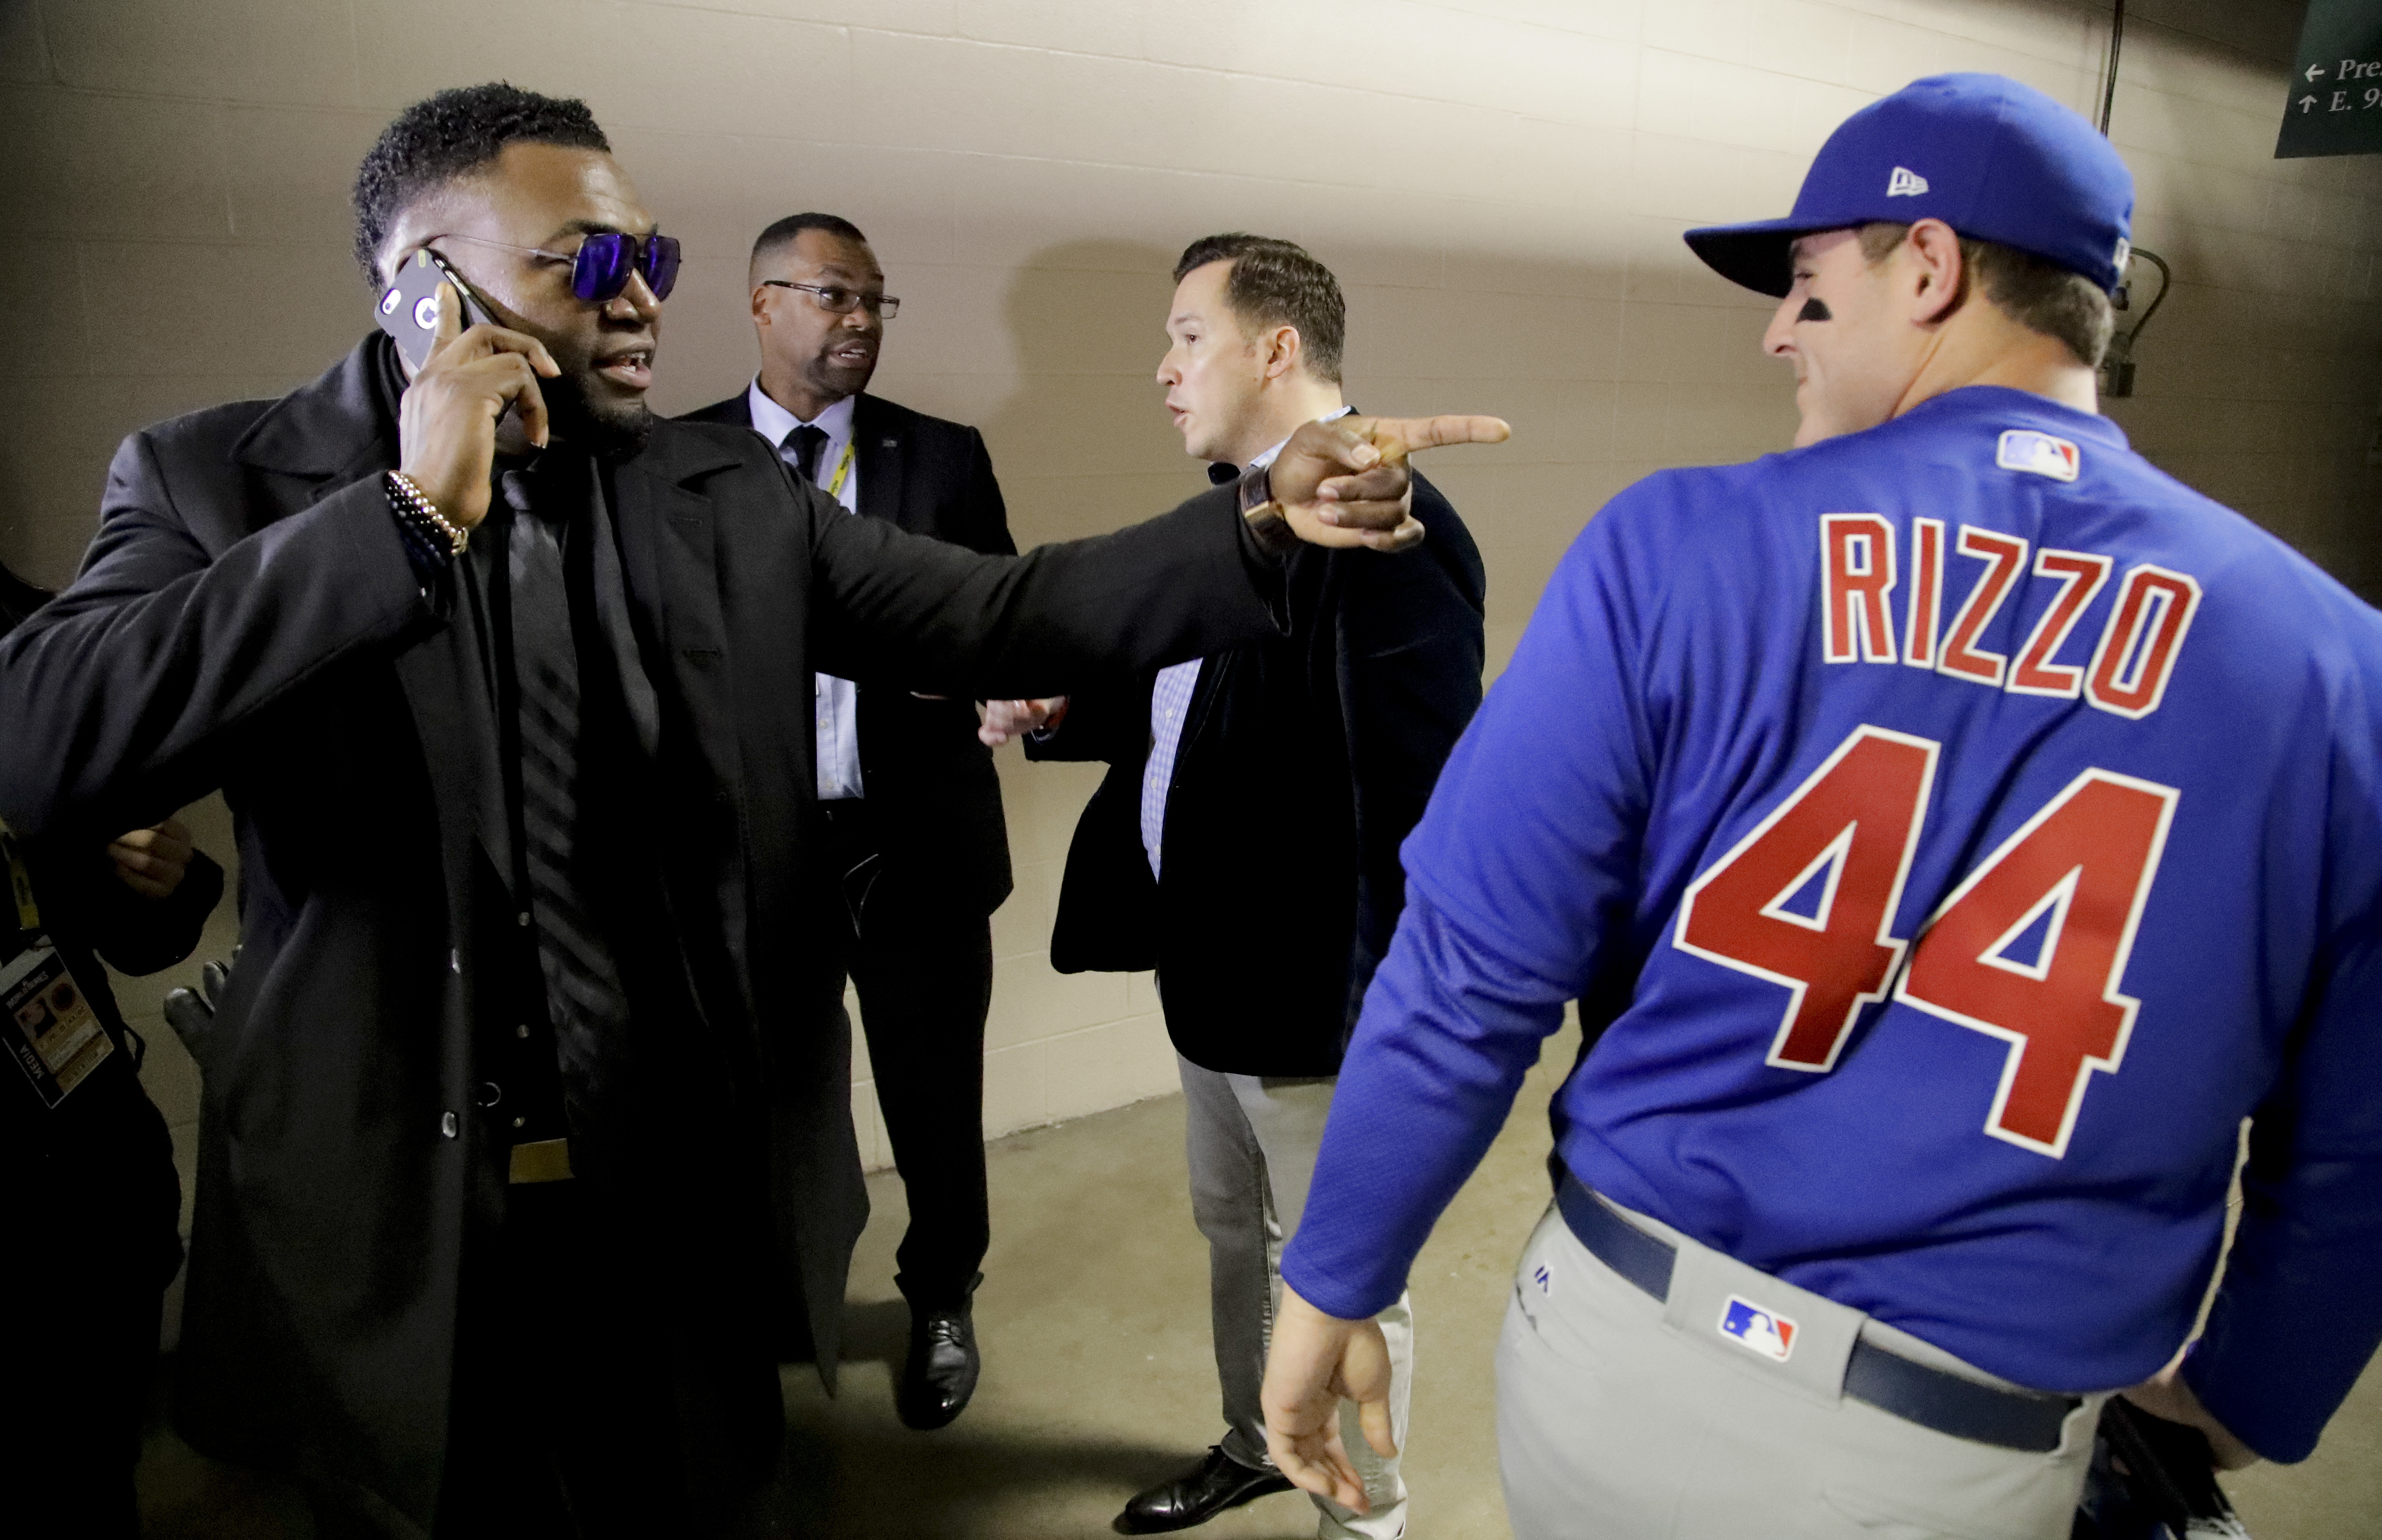 Boston Red Sox' David Ortiz, left, points at Chicago Cubs first baseman Anthony Rizzo after winning the Hank Aaron Award before Game 2 of the Major League Baseball World Series between the Cleveland Indians and the Chicago Cubs Wednesday, Oct. 26, 2016, i